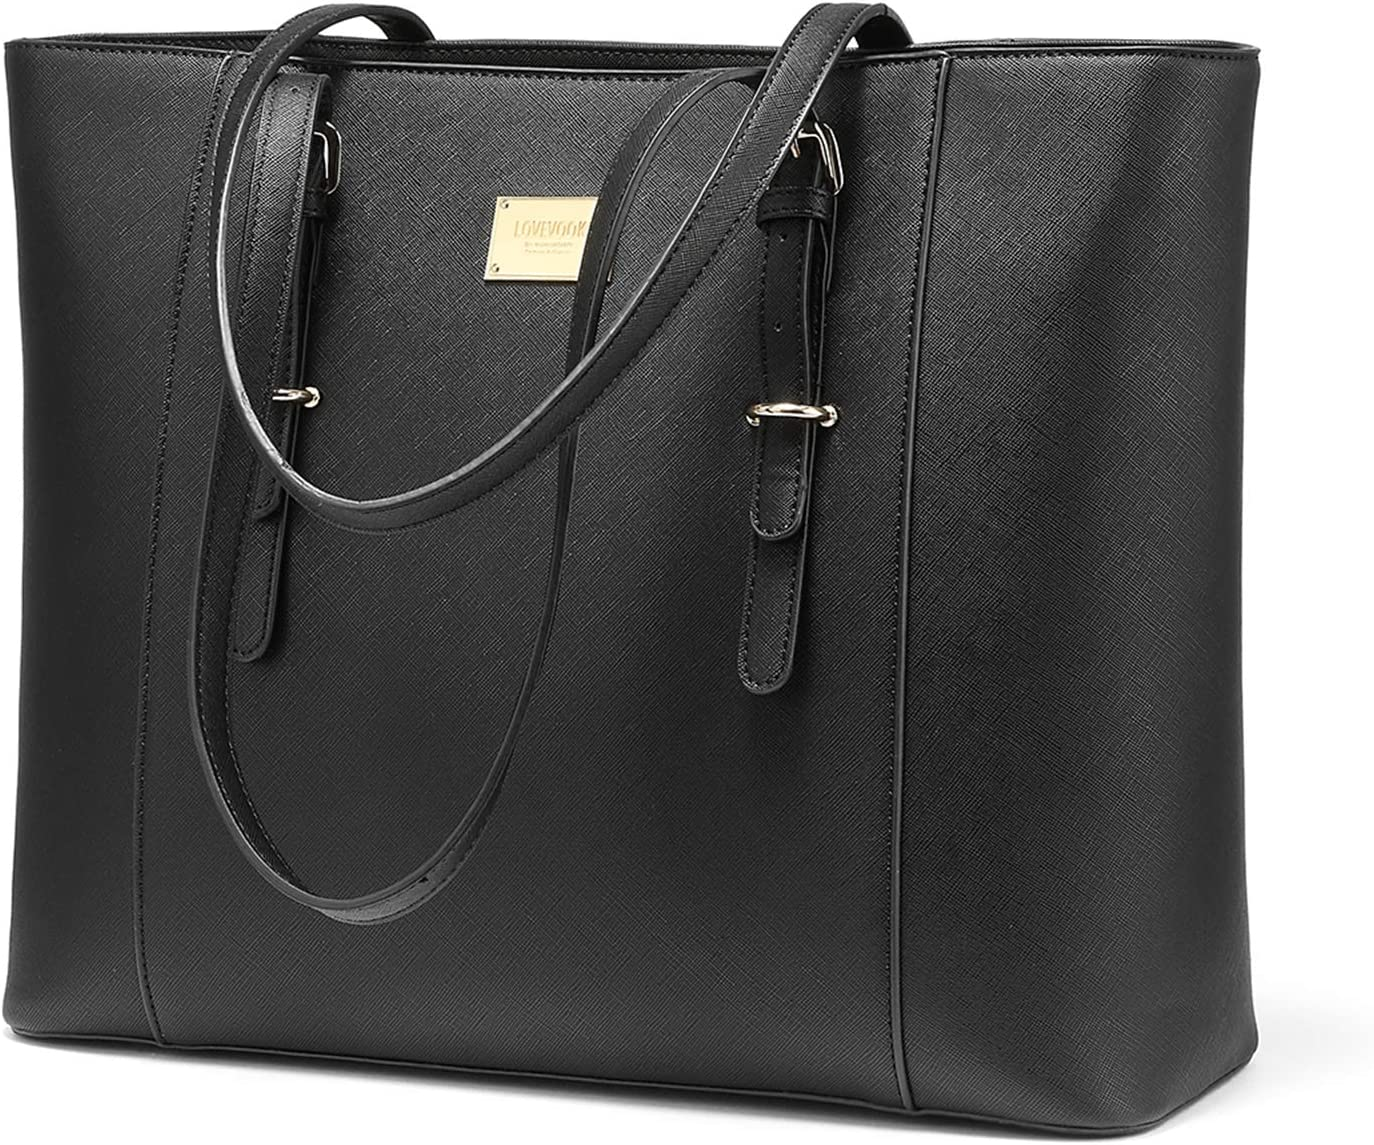 Laptop Bag for Women Large Office Handbags Briefcase Fits Up to 15.6 inch (Updated Version)-Black